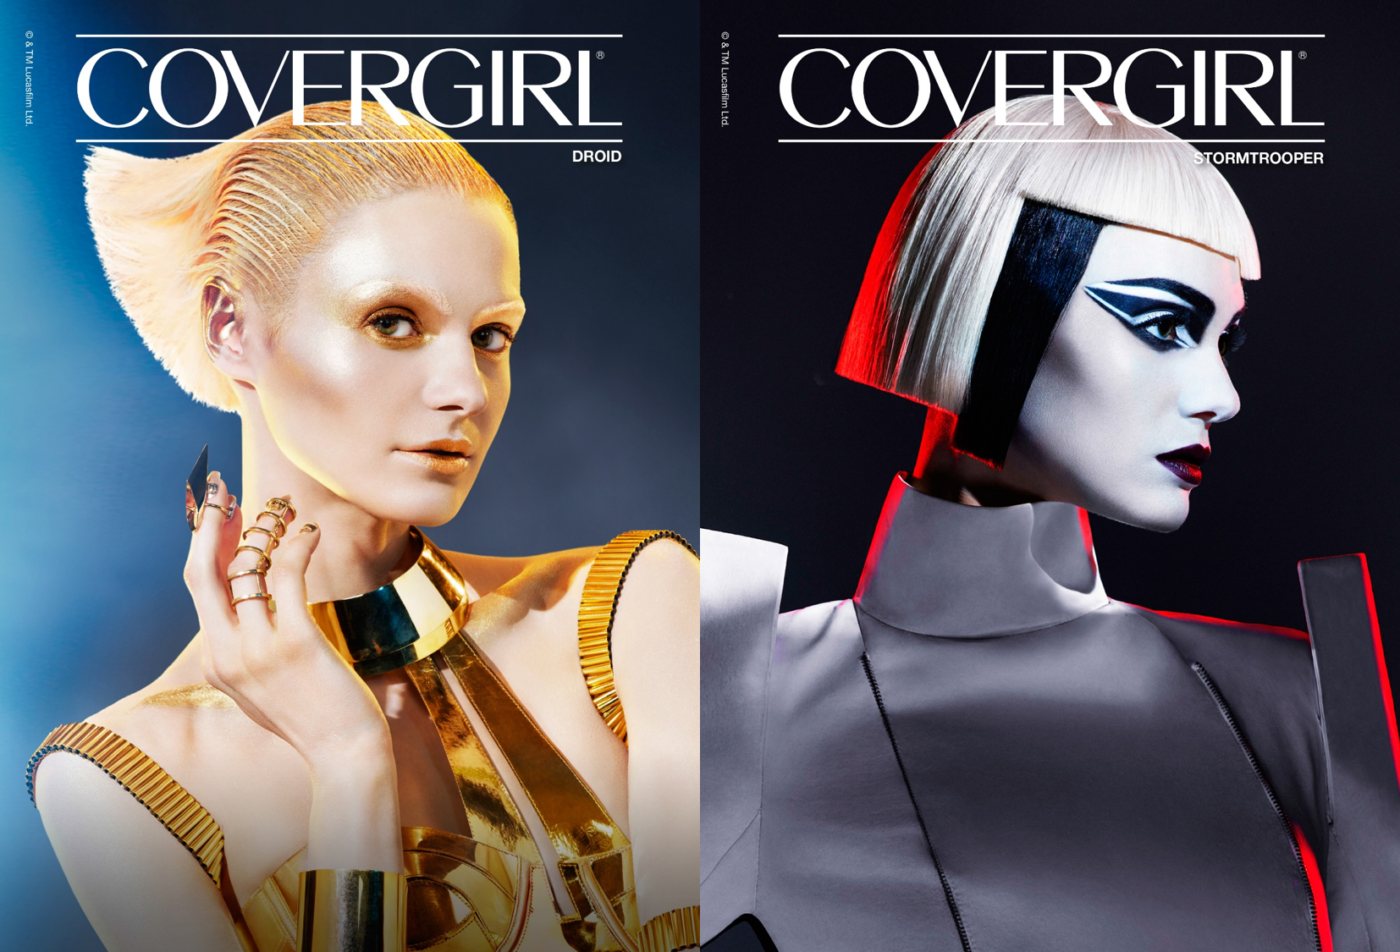 COVERGIRL Joins Forces with Star Wars